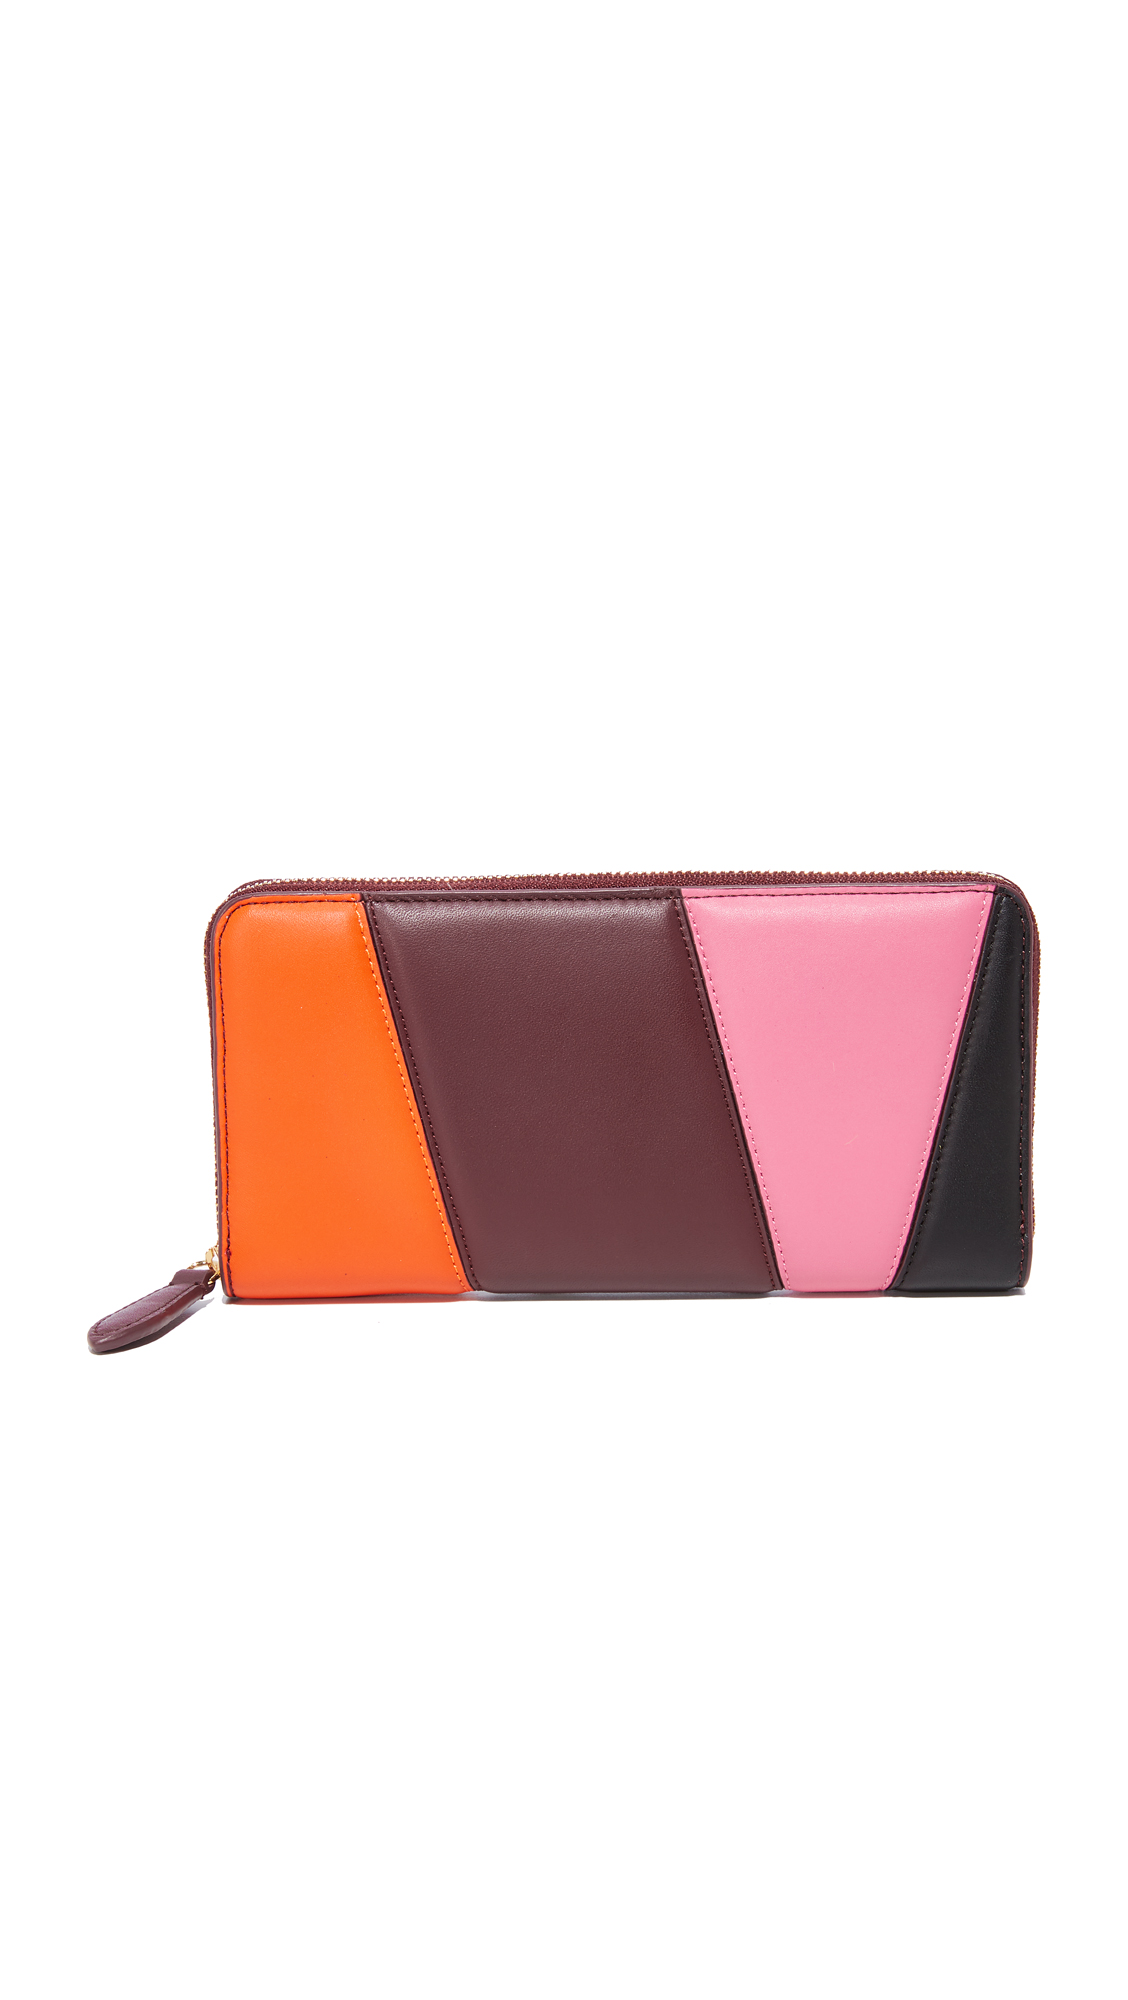 Diane von Furstenberg Continental Wallet - Orange/Bordeaux/Pink Azalea